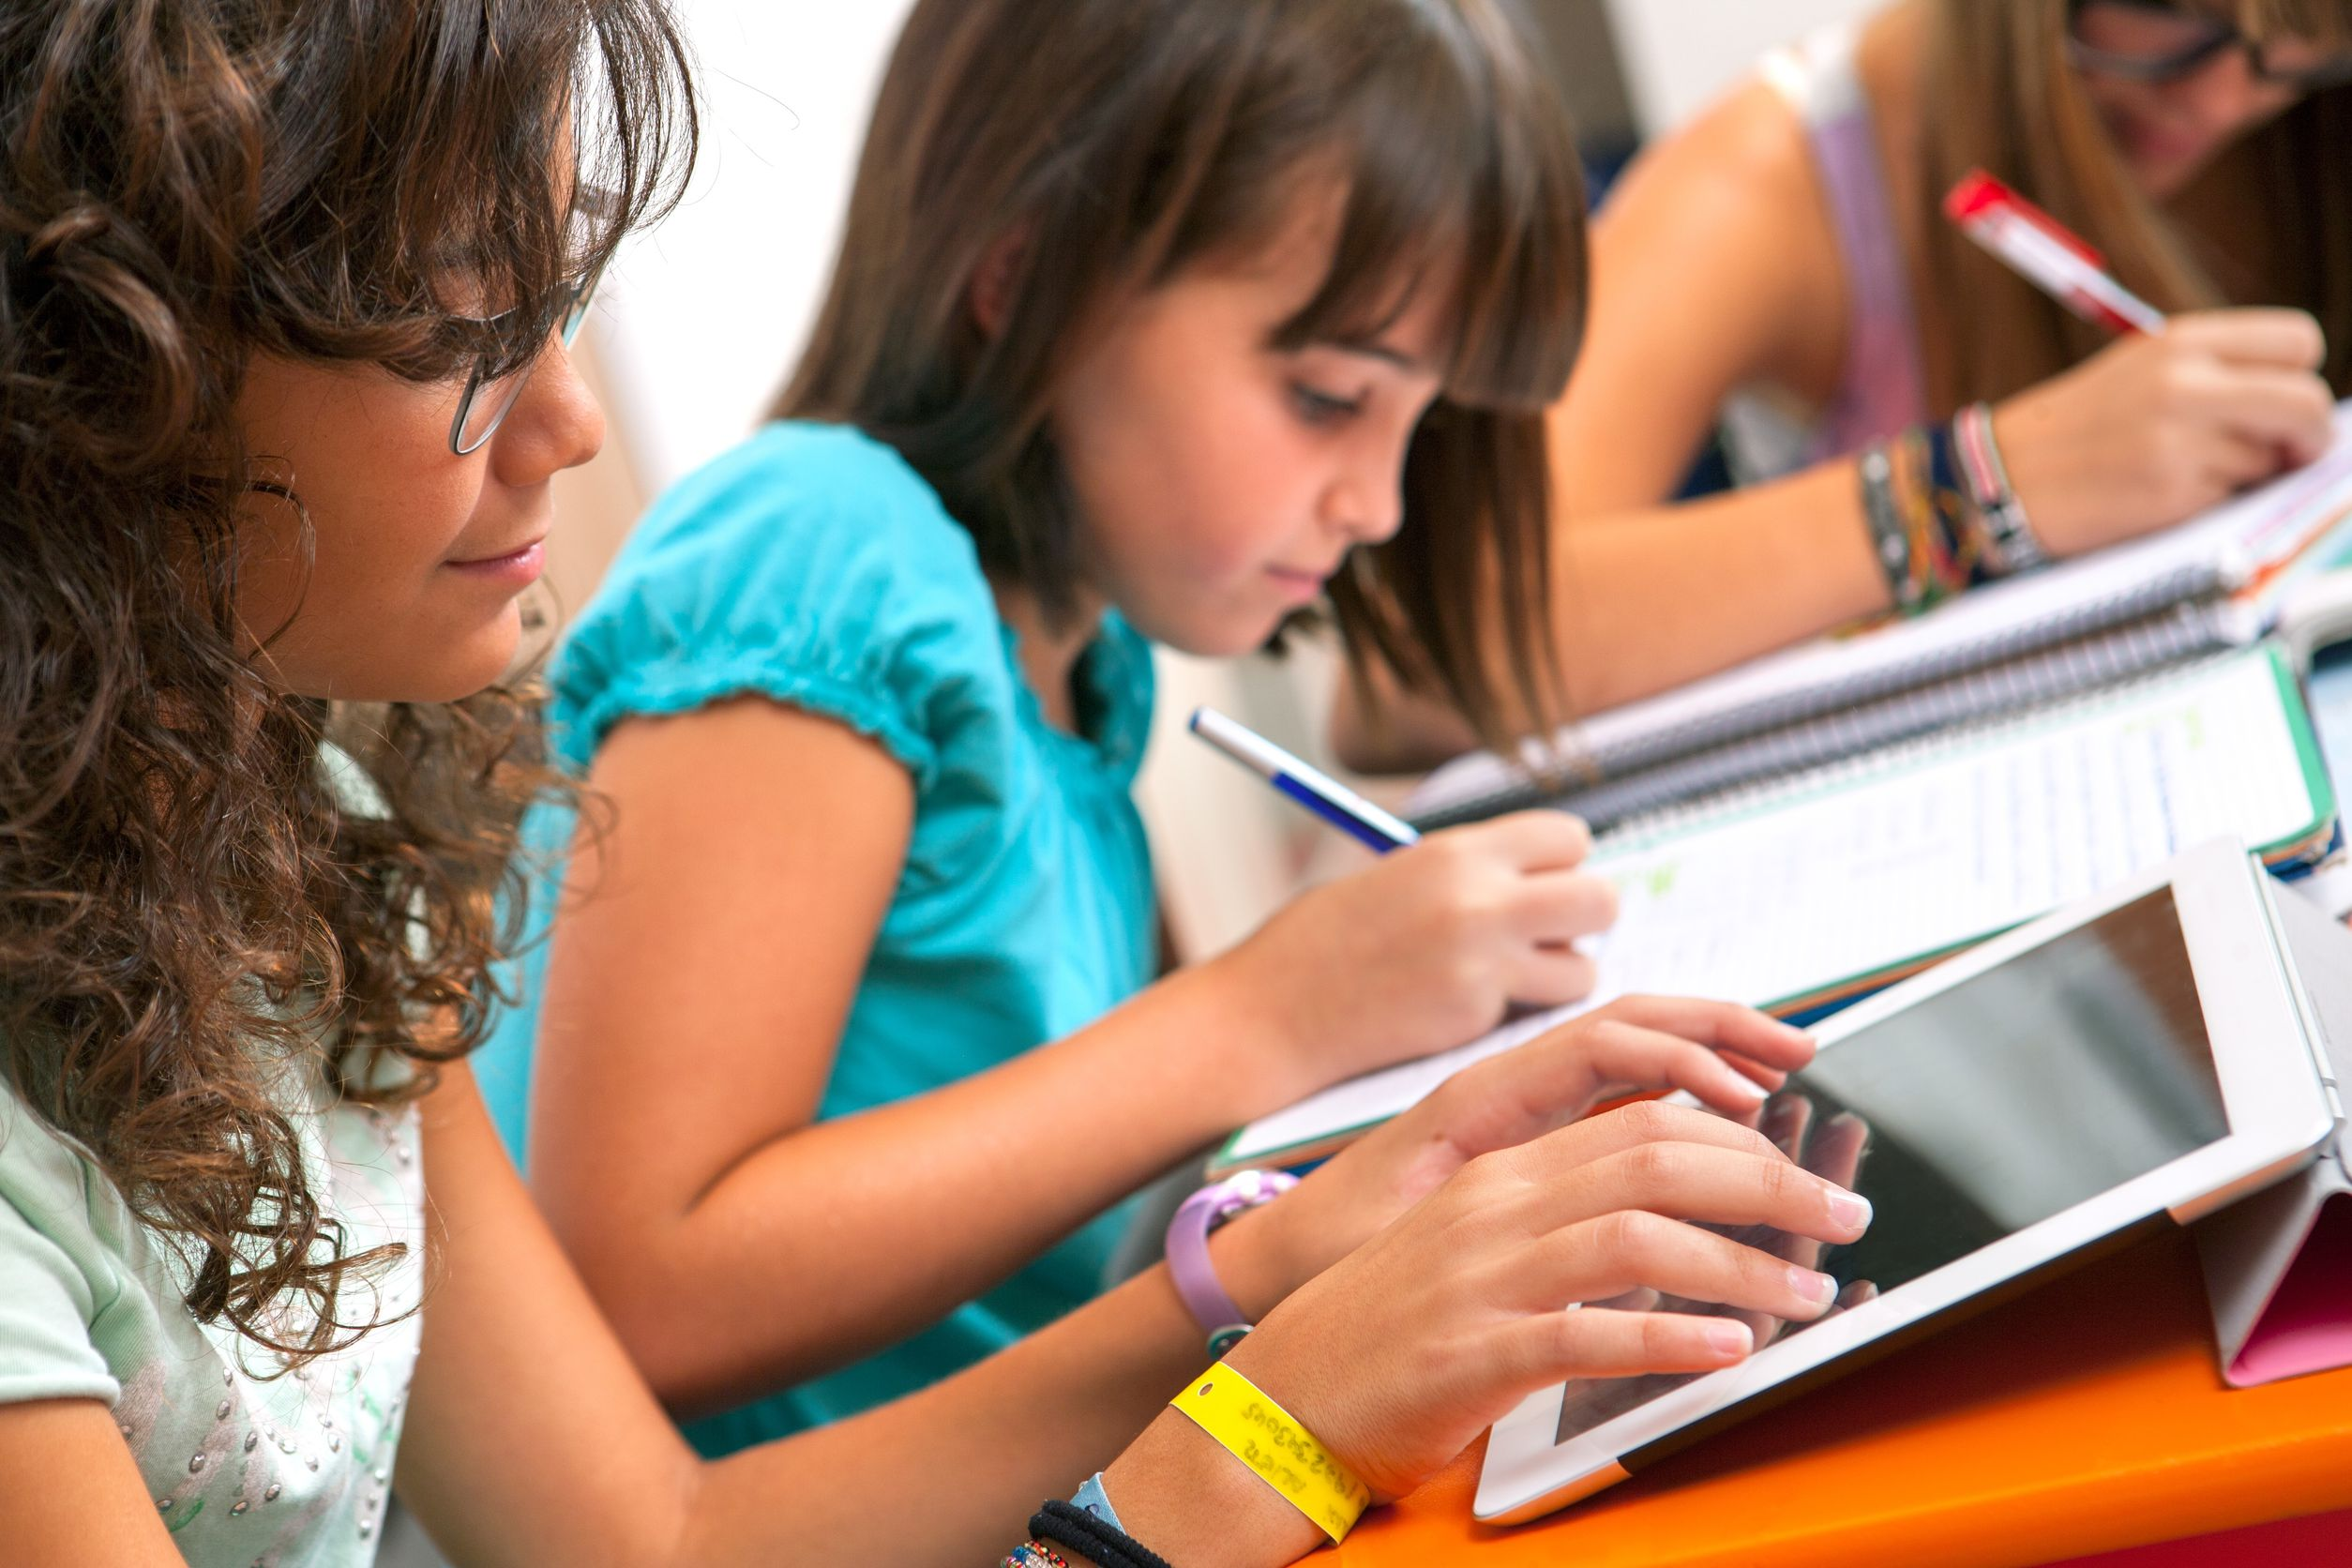 close up of teenage girls doing homework - AV in education